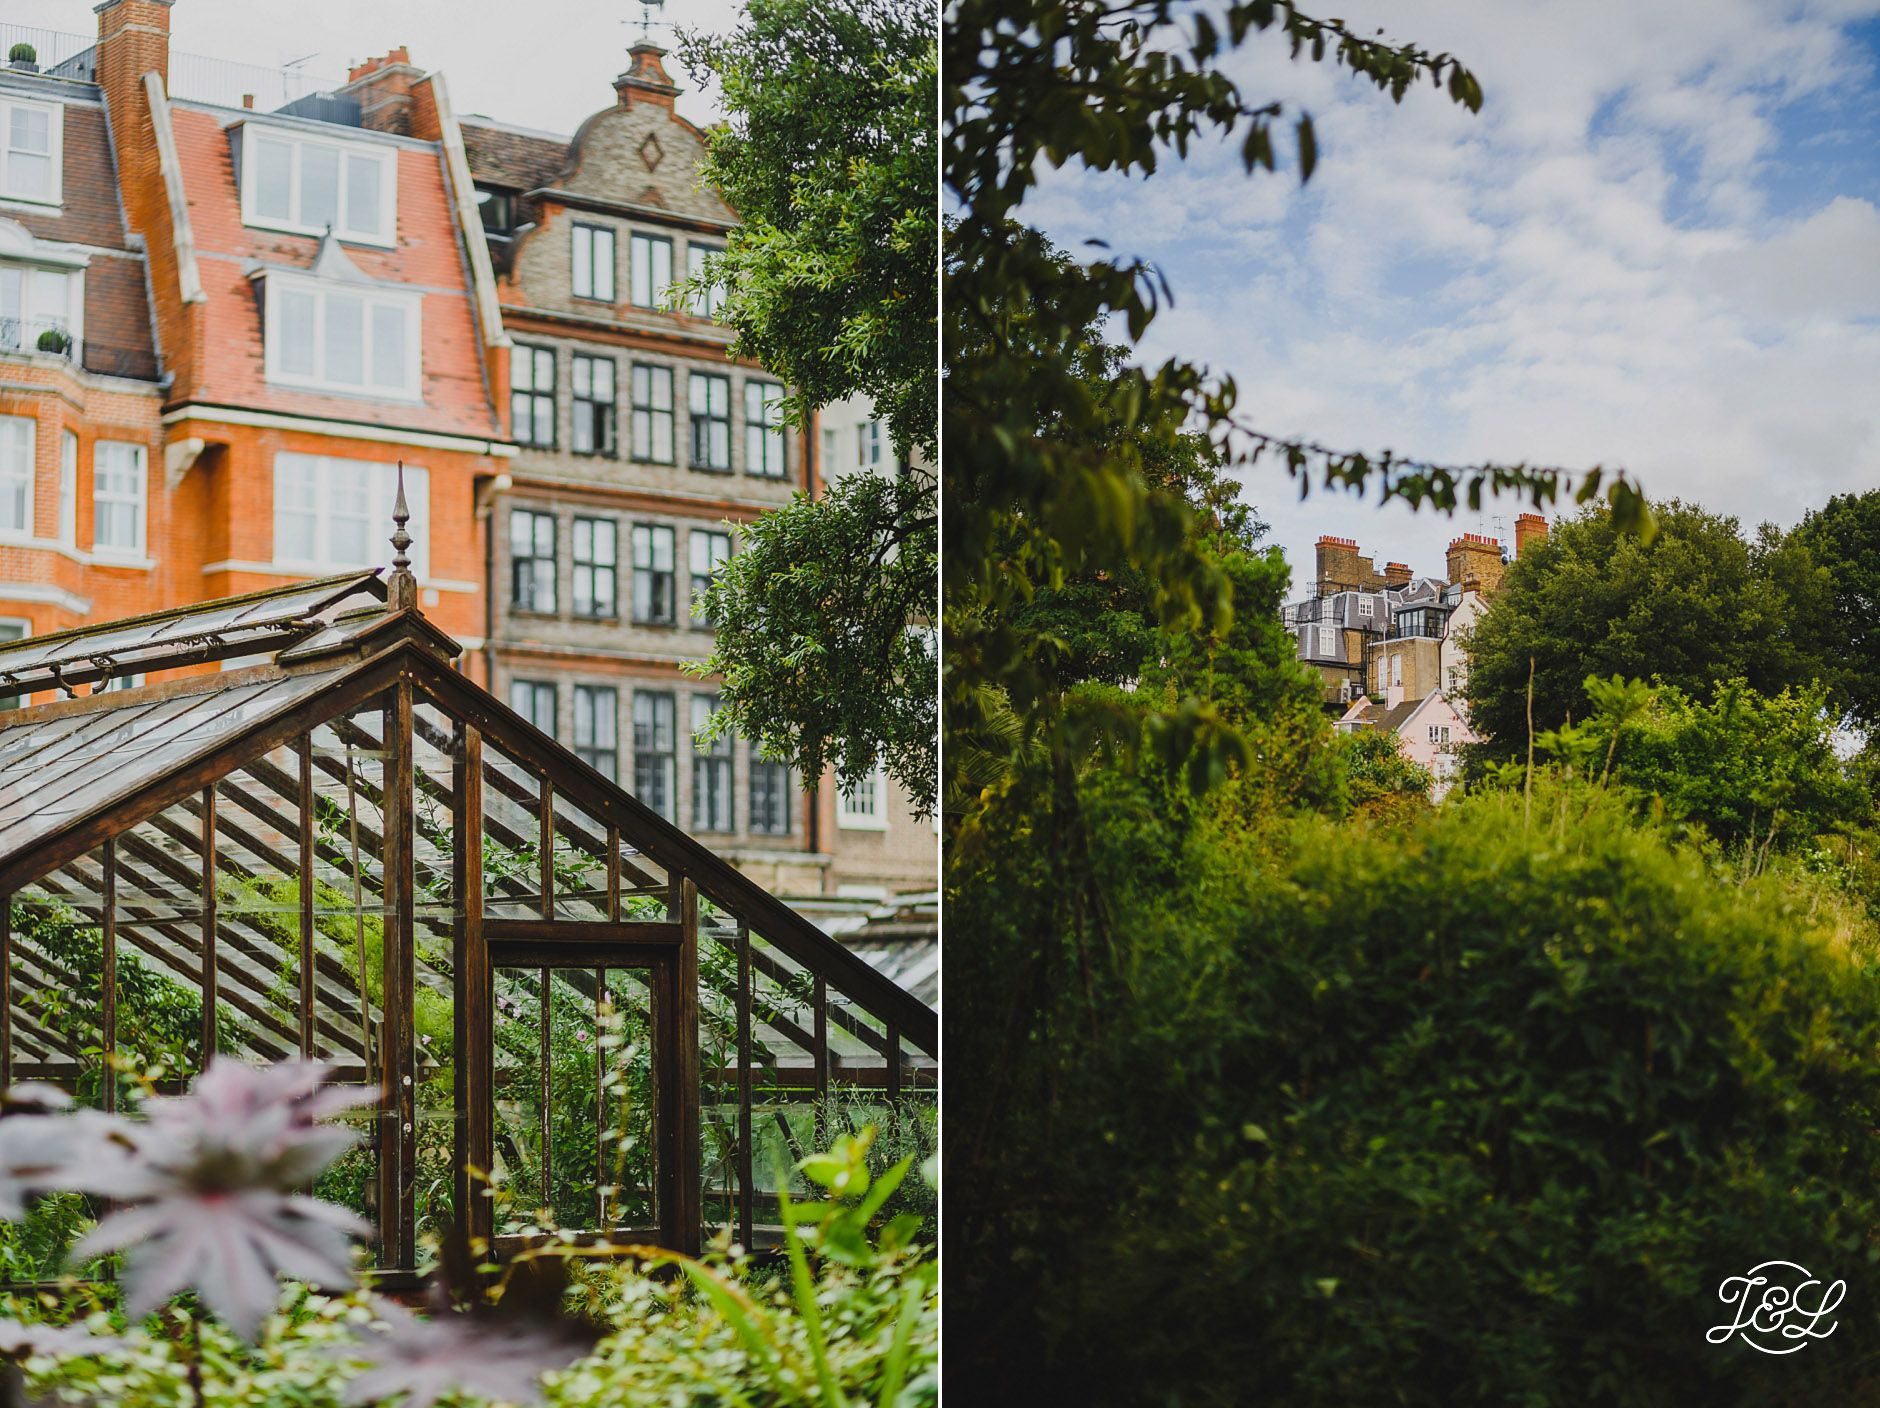 Chelsea physic garden wonderful oasis in this